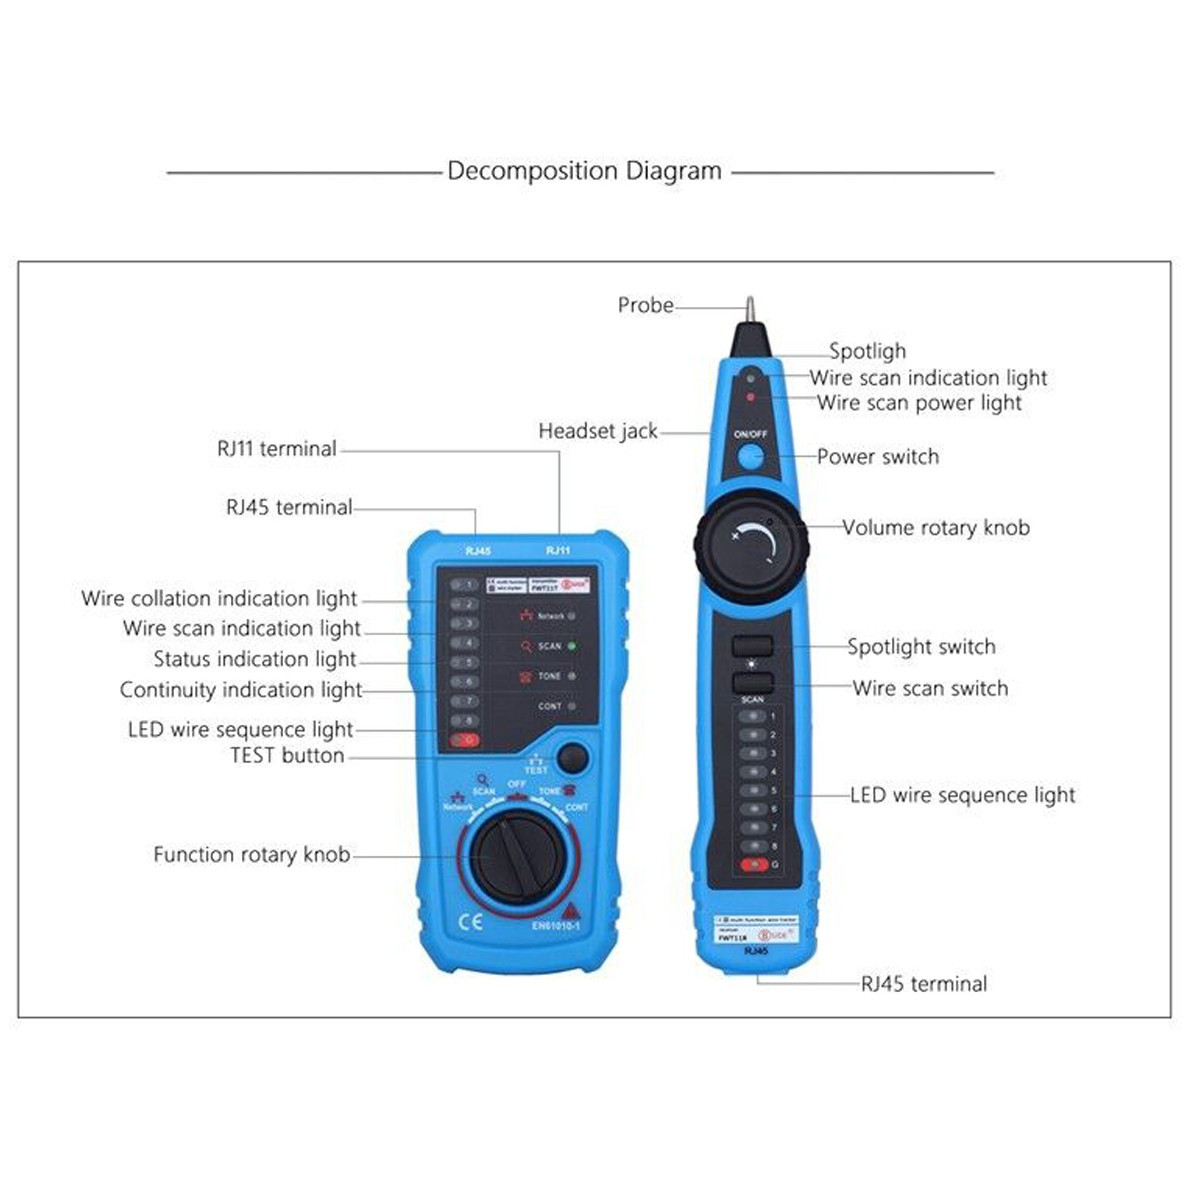 cd7b07fa 7ccf d6e1 12b8 3d20afc9b19c elegiant rj11 rj45 cable tester multifunction wire tracker check rj11 to rj45 wiring diagram at suagrazia.org